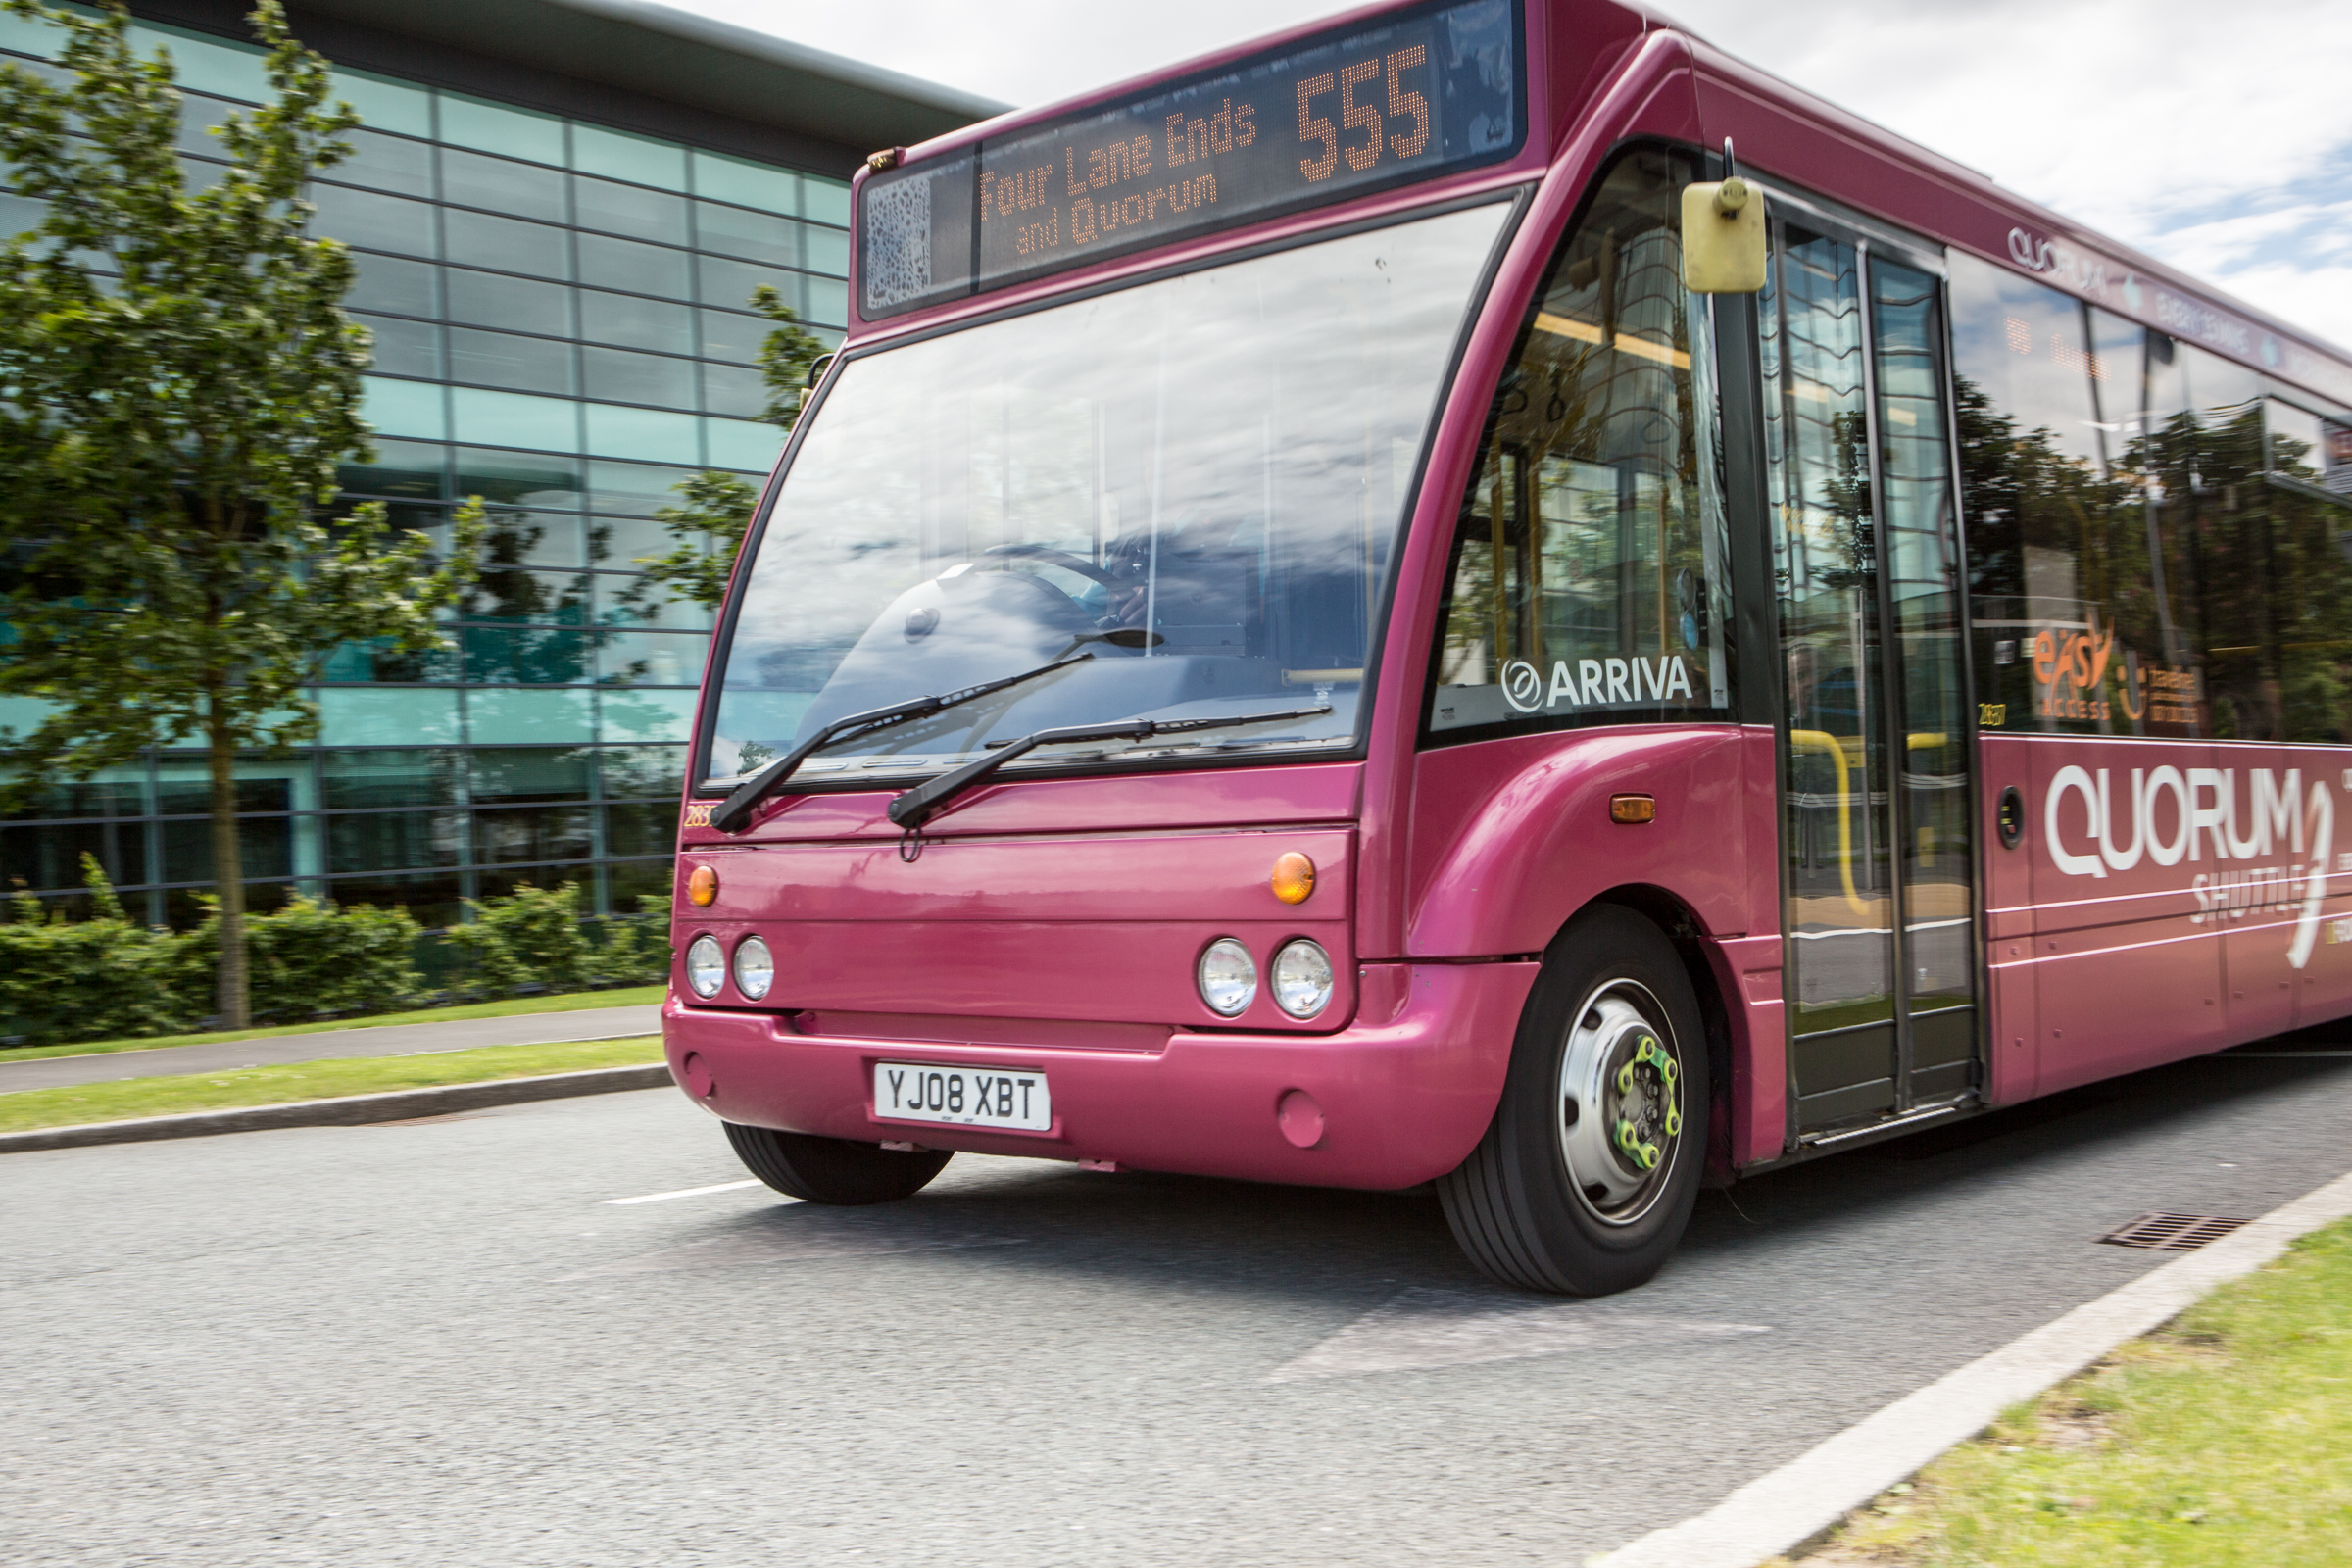 New Buses to Serve Quorum Park